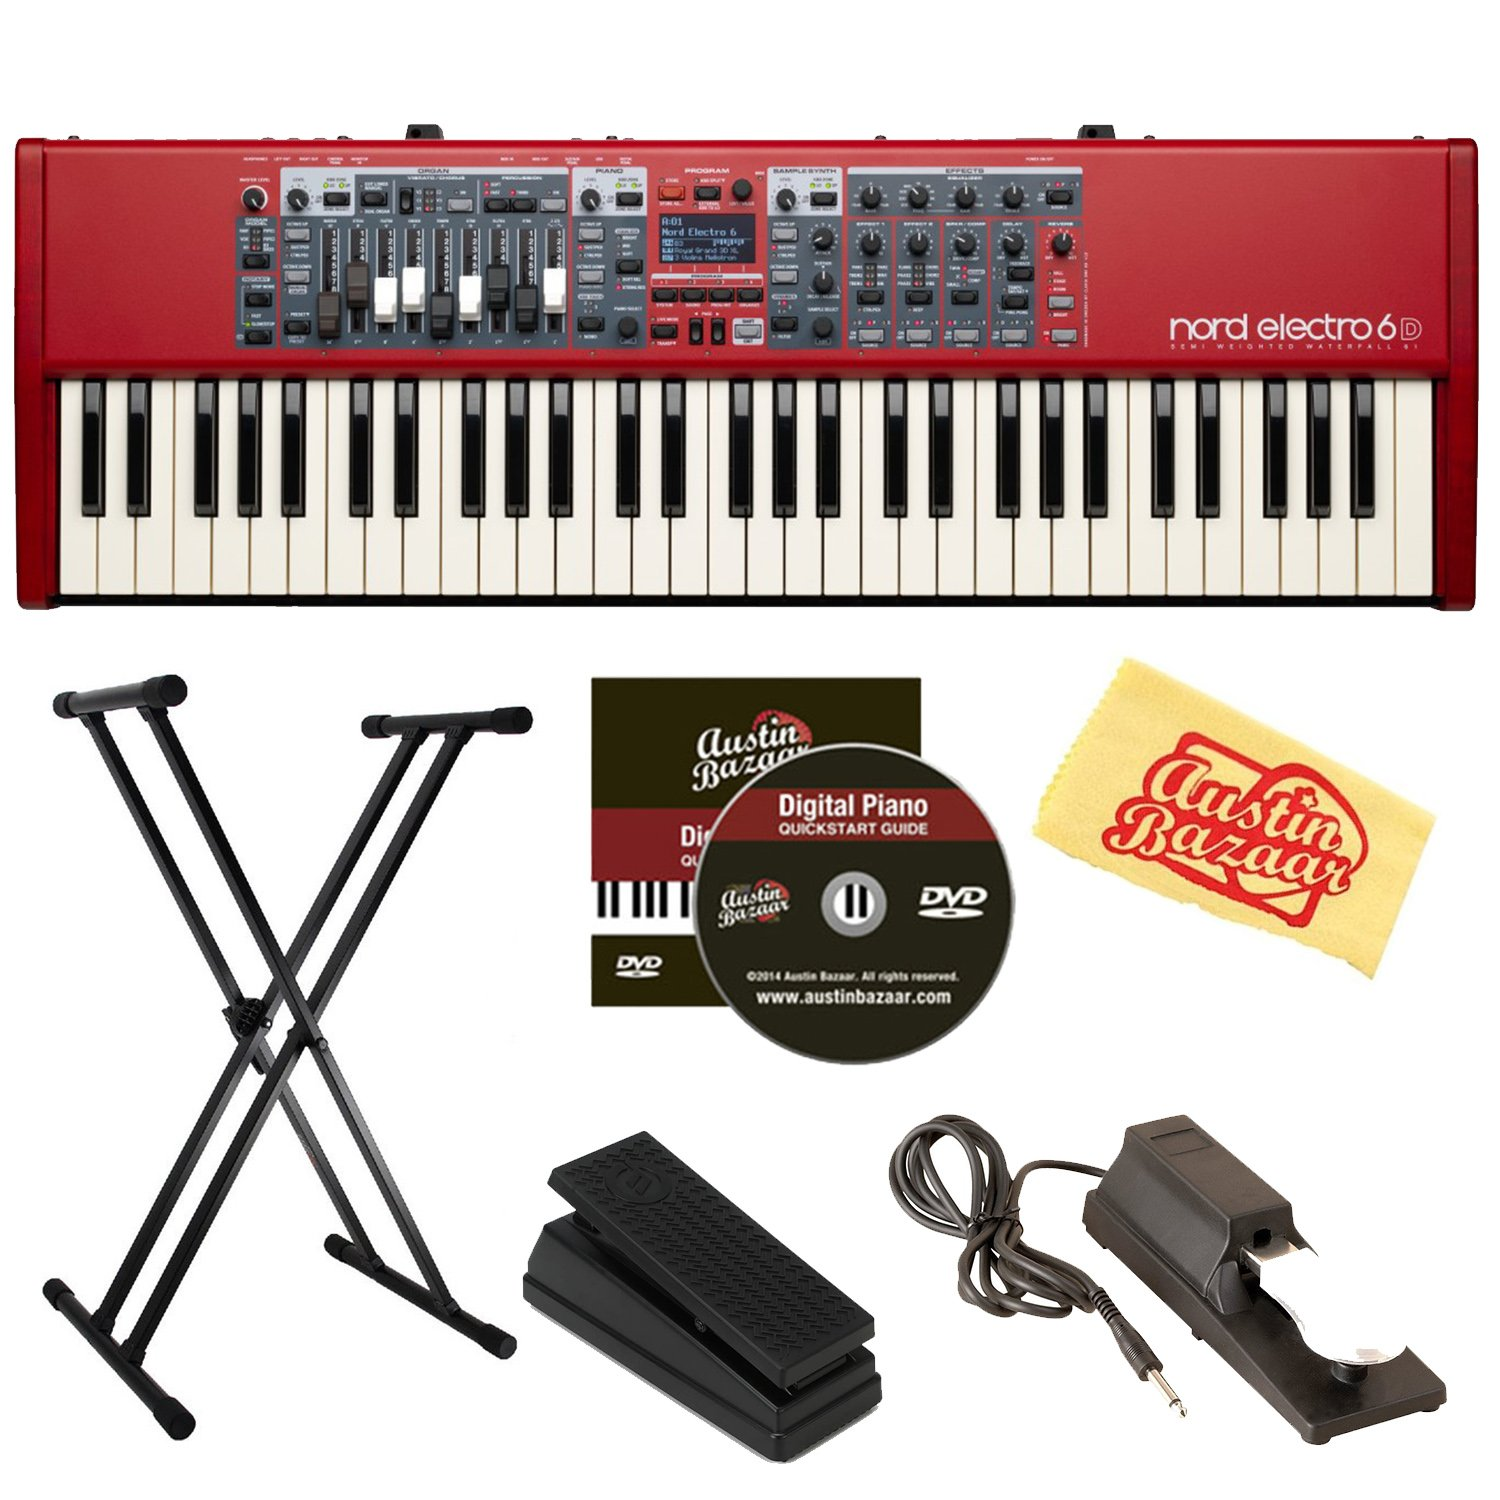 Nord Electro 6D 61-Key Stage Piano Bundle with Adjustable Stand, Expression Pedal, Sustain Pedal, Austin Bazaar Instructional DVD, and Polishing Cloth by Nord